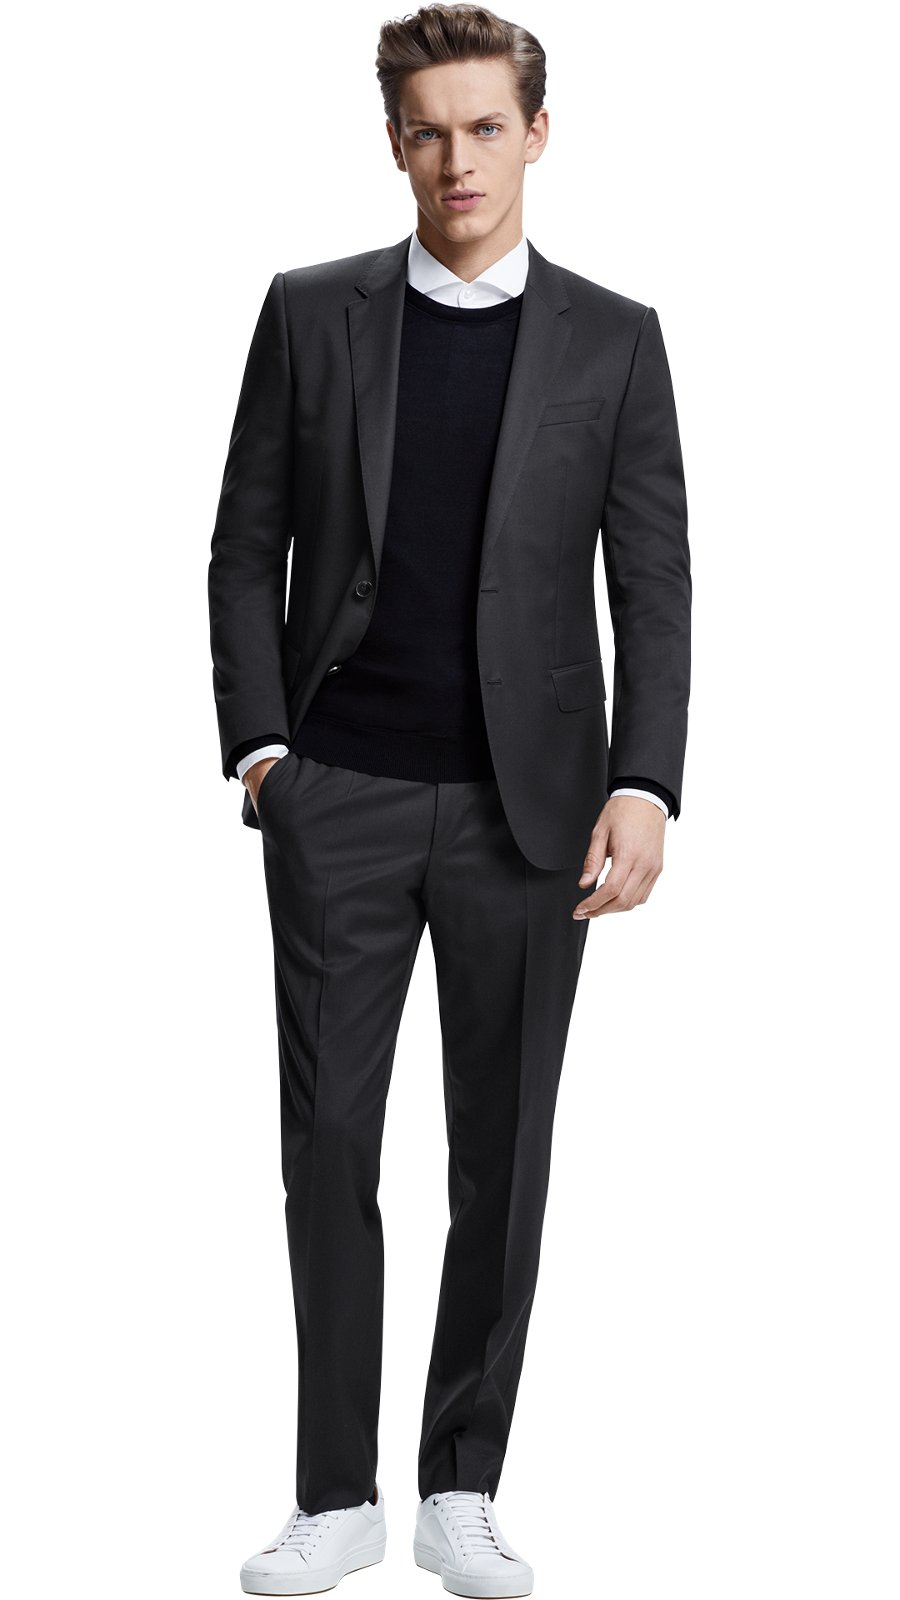 a747400443334e Man weaing a mix and match dark grey suit together with black knitwear, ...